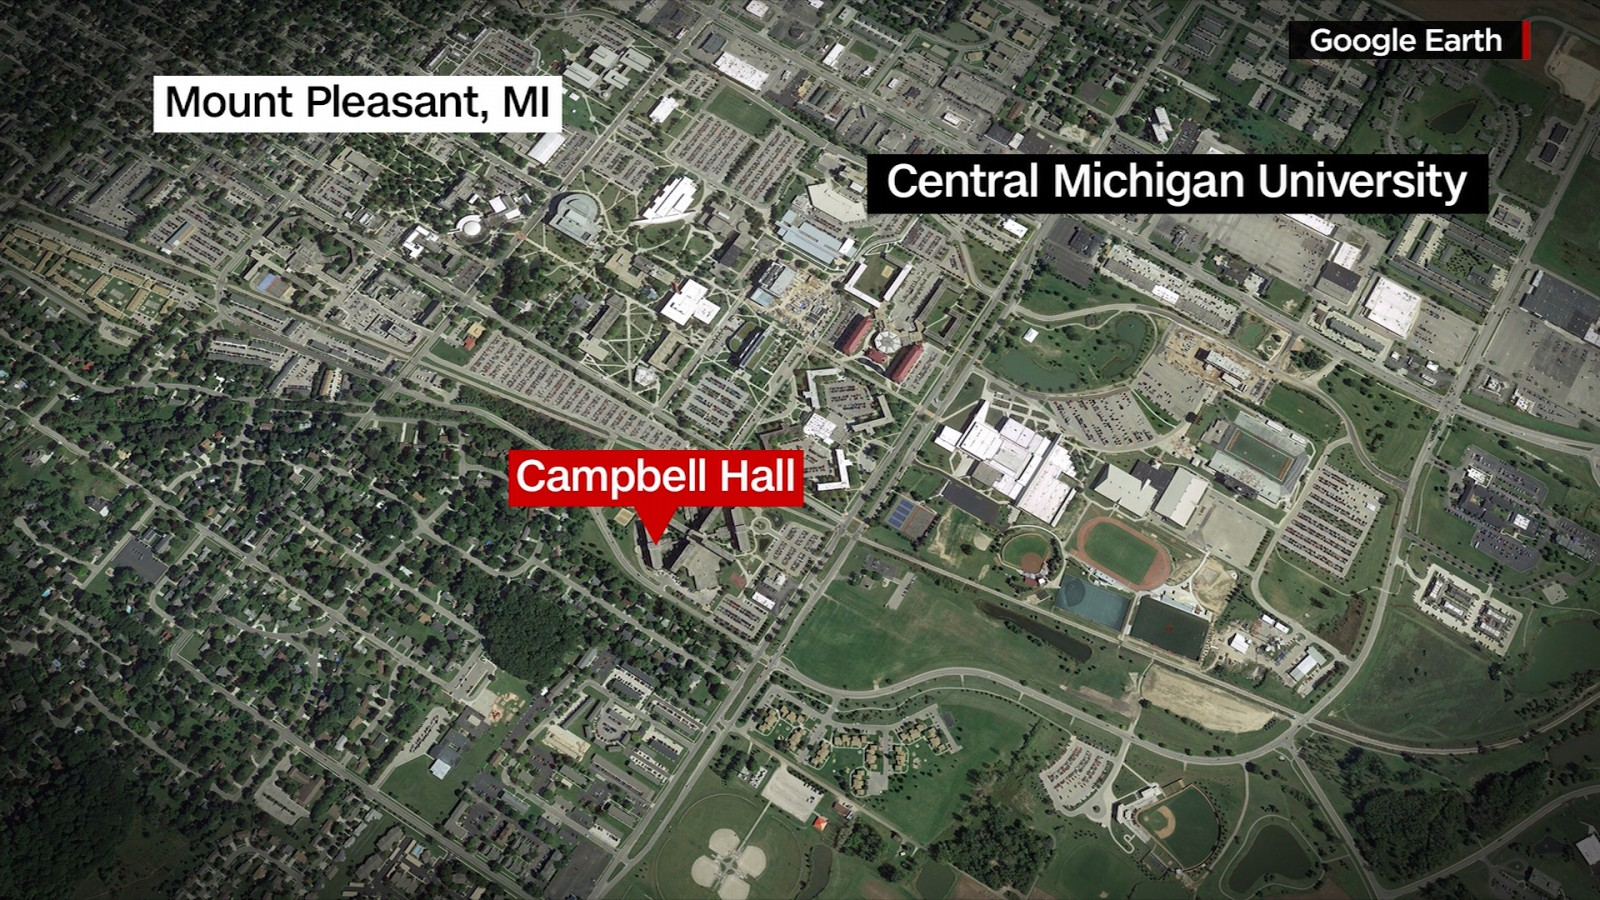 2 dead in Central Michigan University shooting, gunman at large